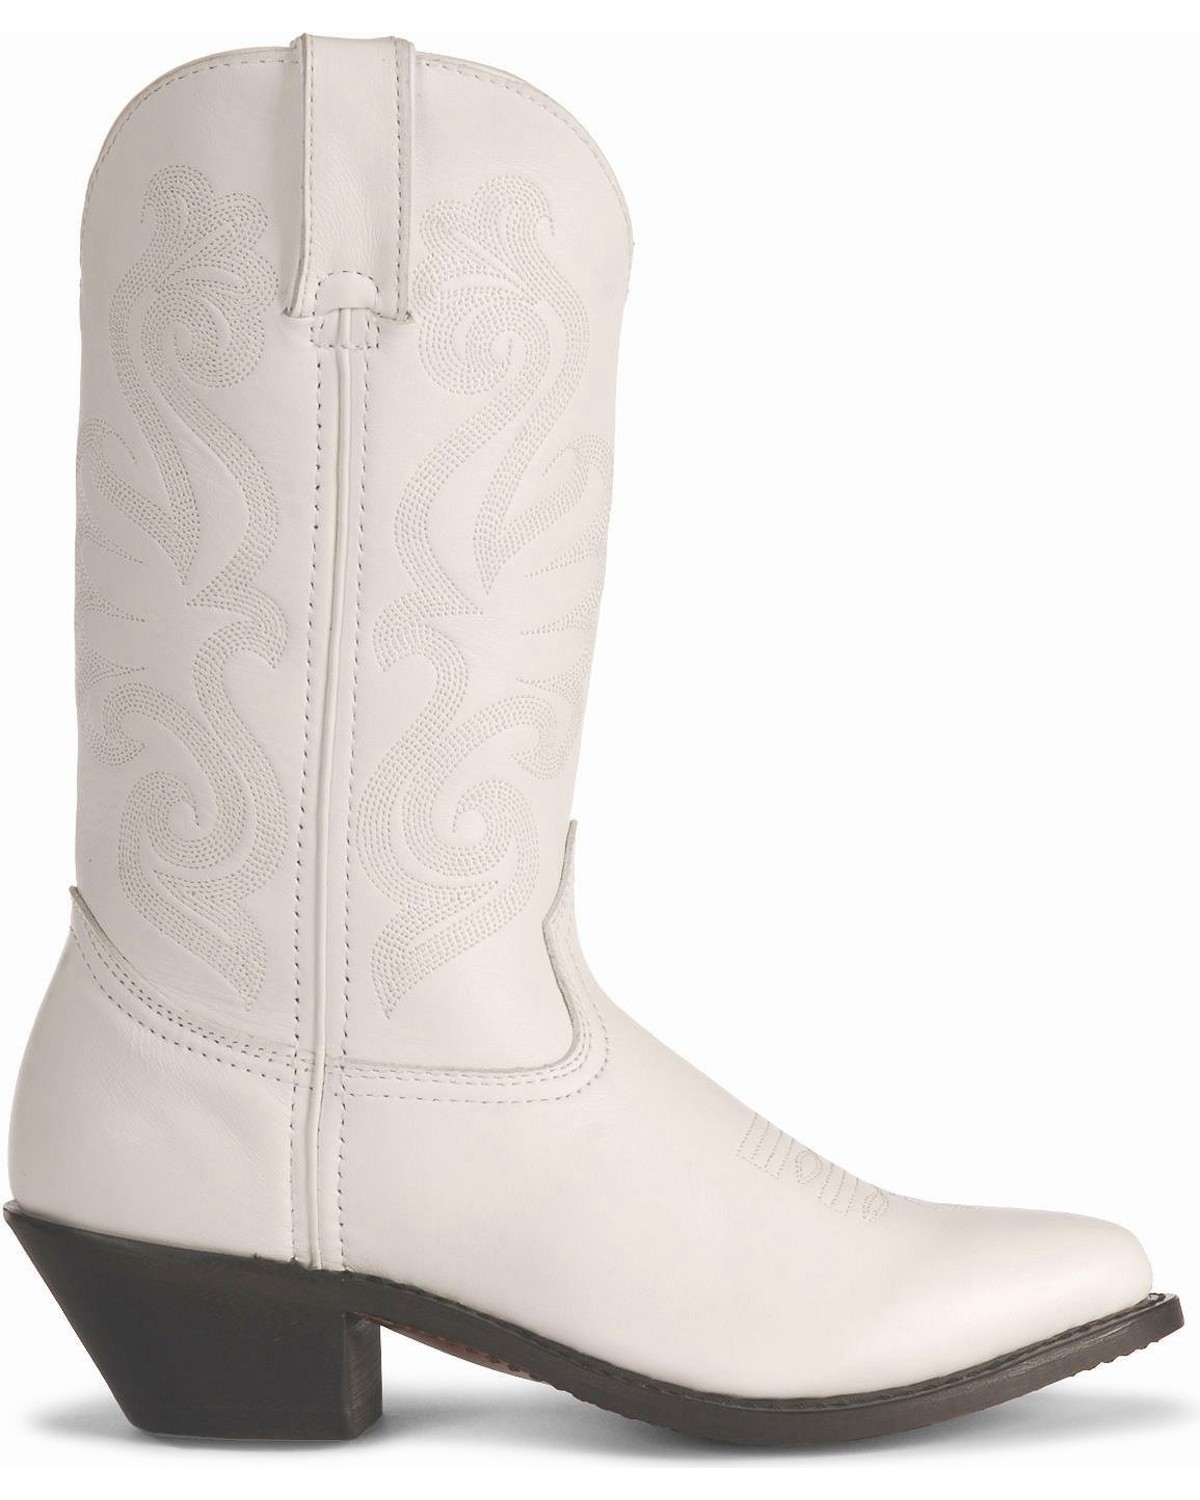 Durango Wild White Cowgirl Boots Pointed Toe Hi Res